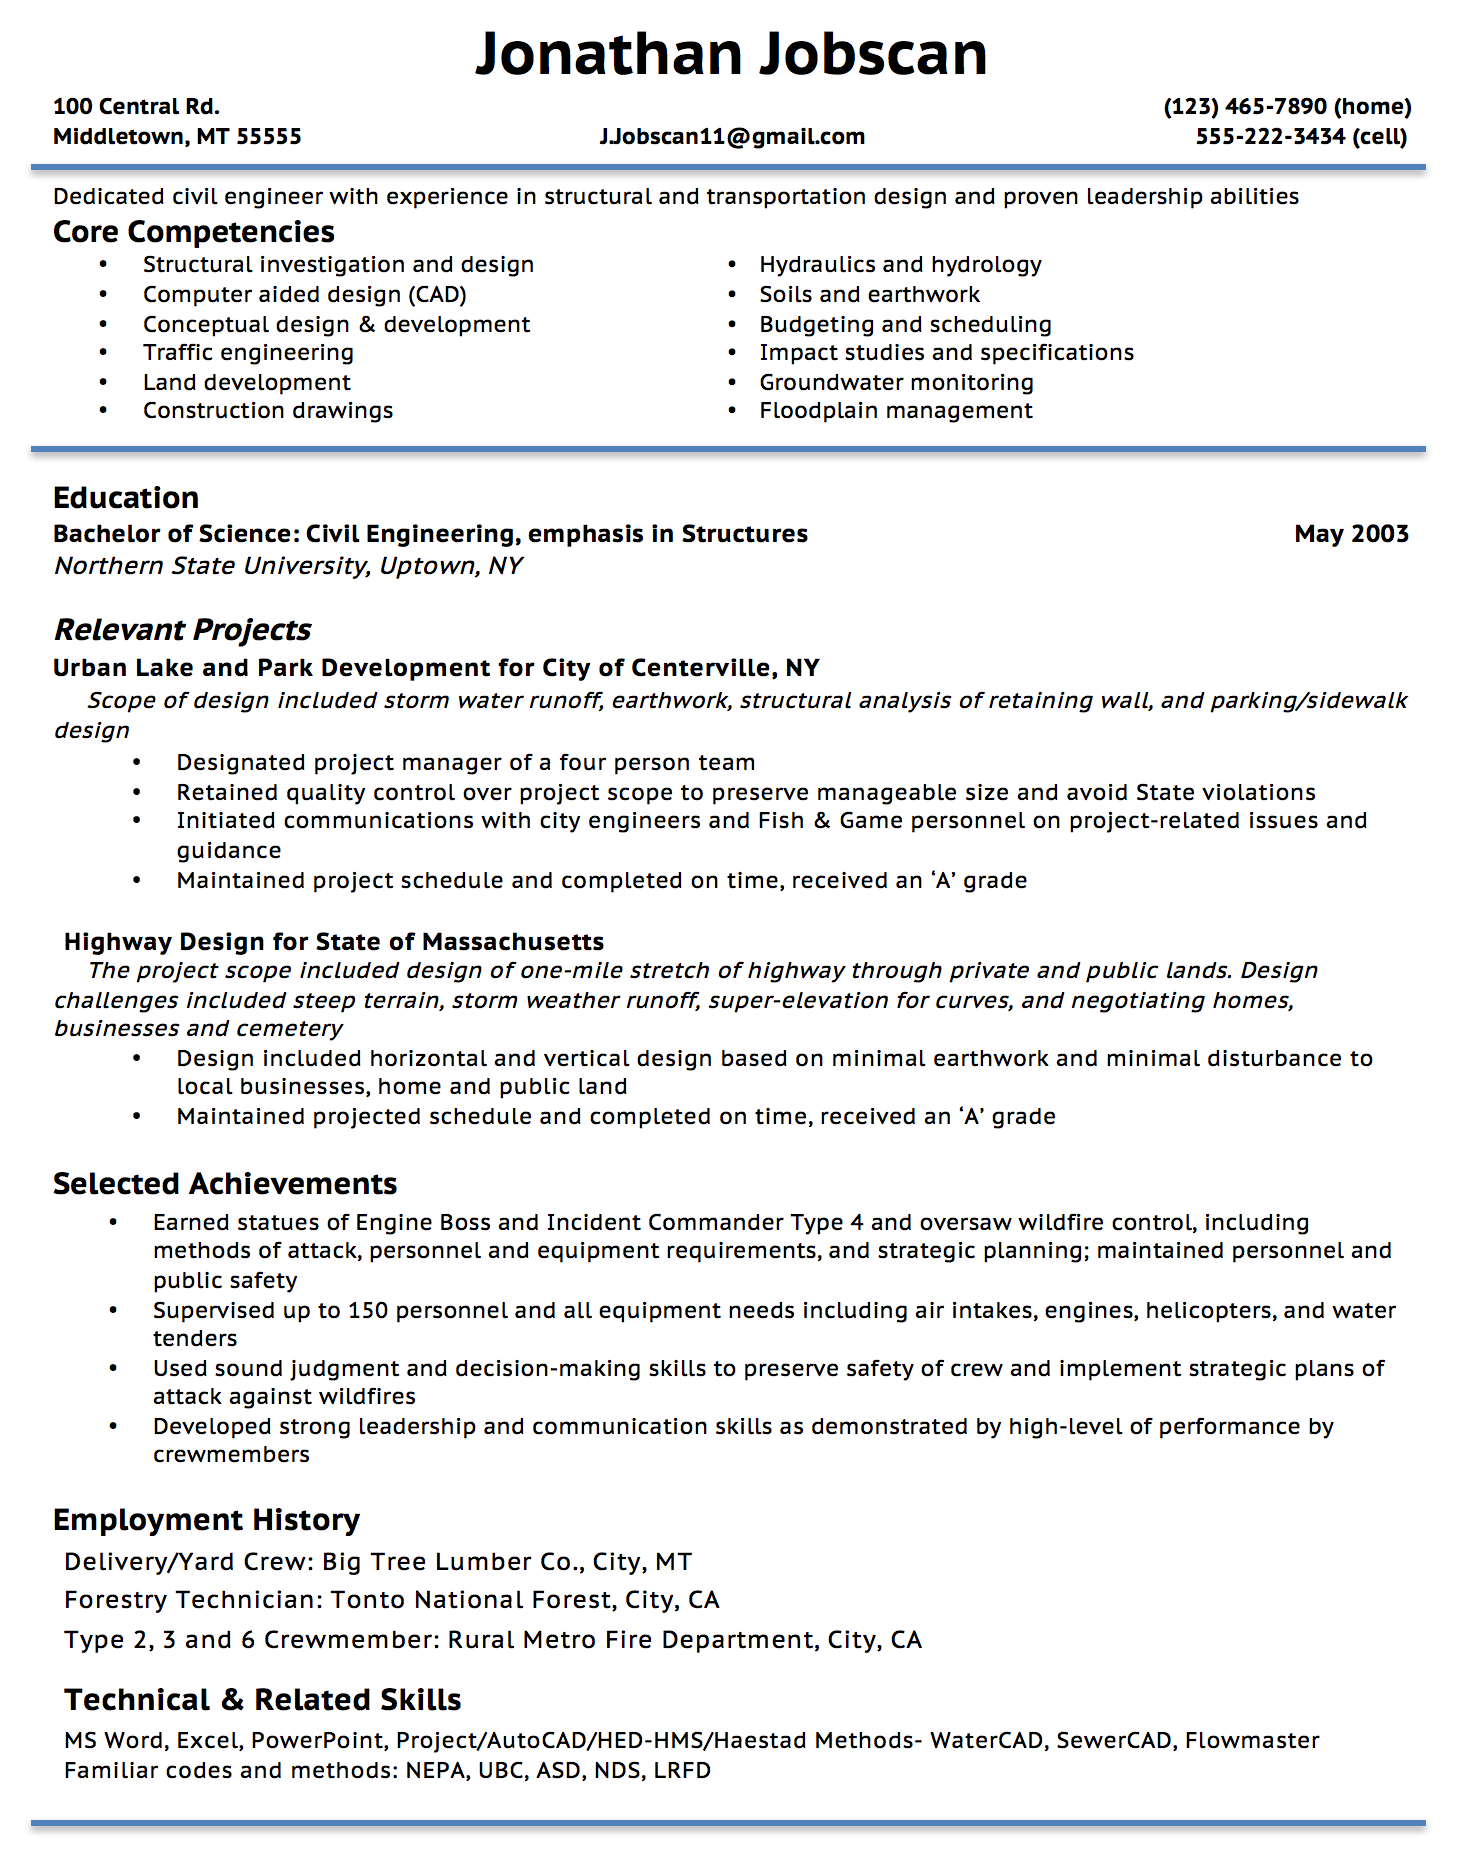 Opposenewapstandardsus  Gorgeous Resume Writing Guide  Jobscan With Excellent Example Of A Functional Resume Format With Delectable High School Resumes Also Create A Resume For Free In Addition Resume Follow Up Email And Marketing Resume Examples As Well As Professional Resume Builder Additionally Resume Google Docs From Jobscanco With Opposenewapstandardsus  Excellent Resume Writing Guide  Jobscan With Delectable Example Of A Functional Resume Format And Gorgeous High School Resumes Also Create A Resume For Free In Addition Resume Follow Up Email From Jobscanco